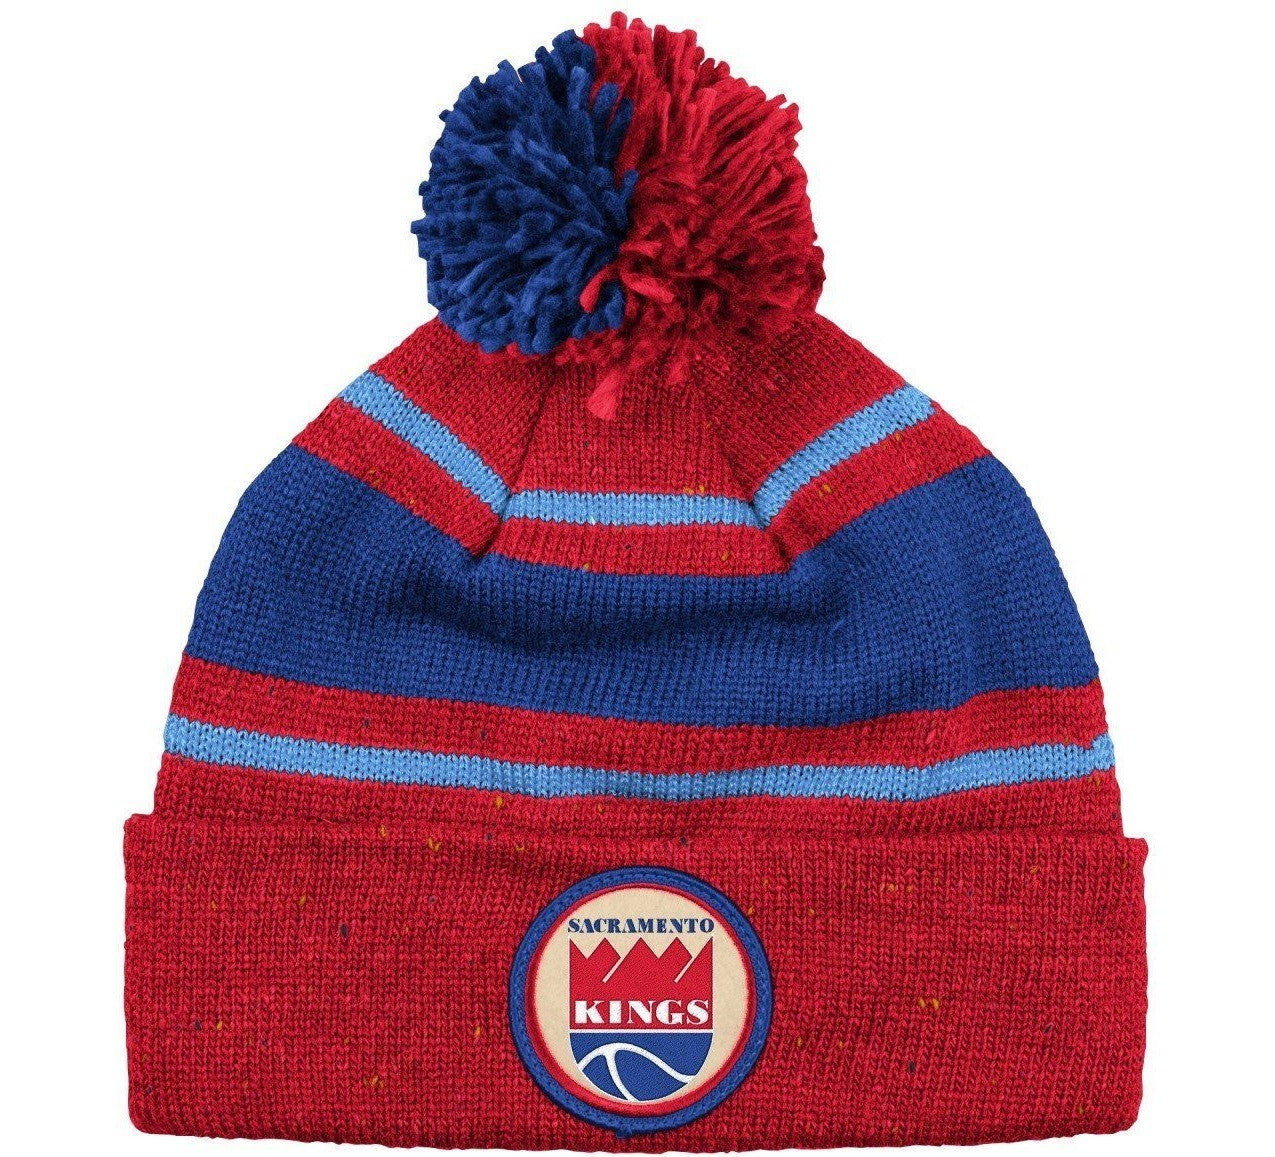 Kings Retro NBA Pom Beanie - And Still